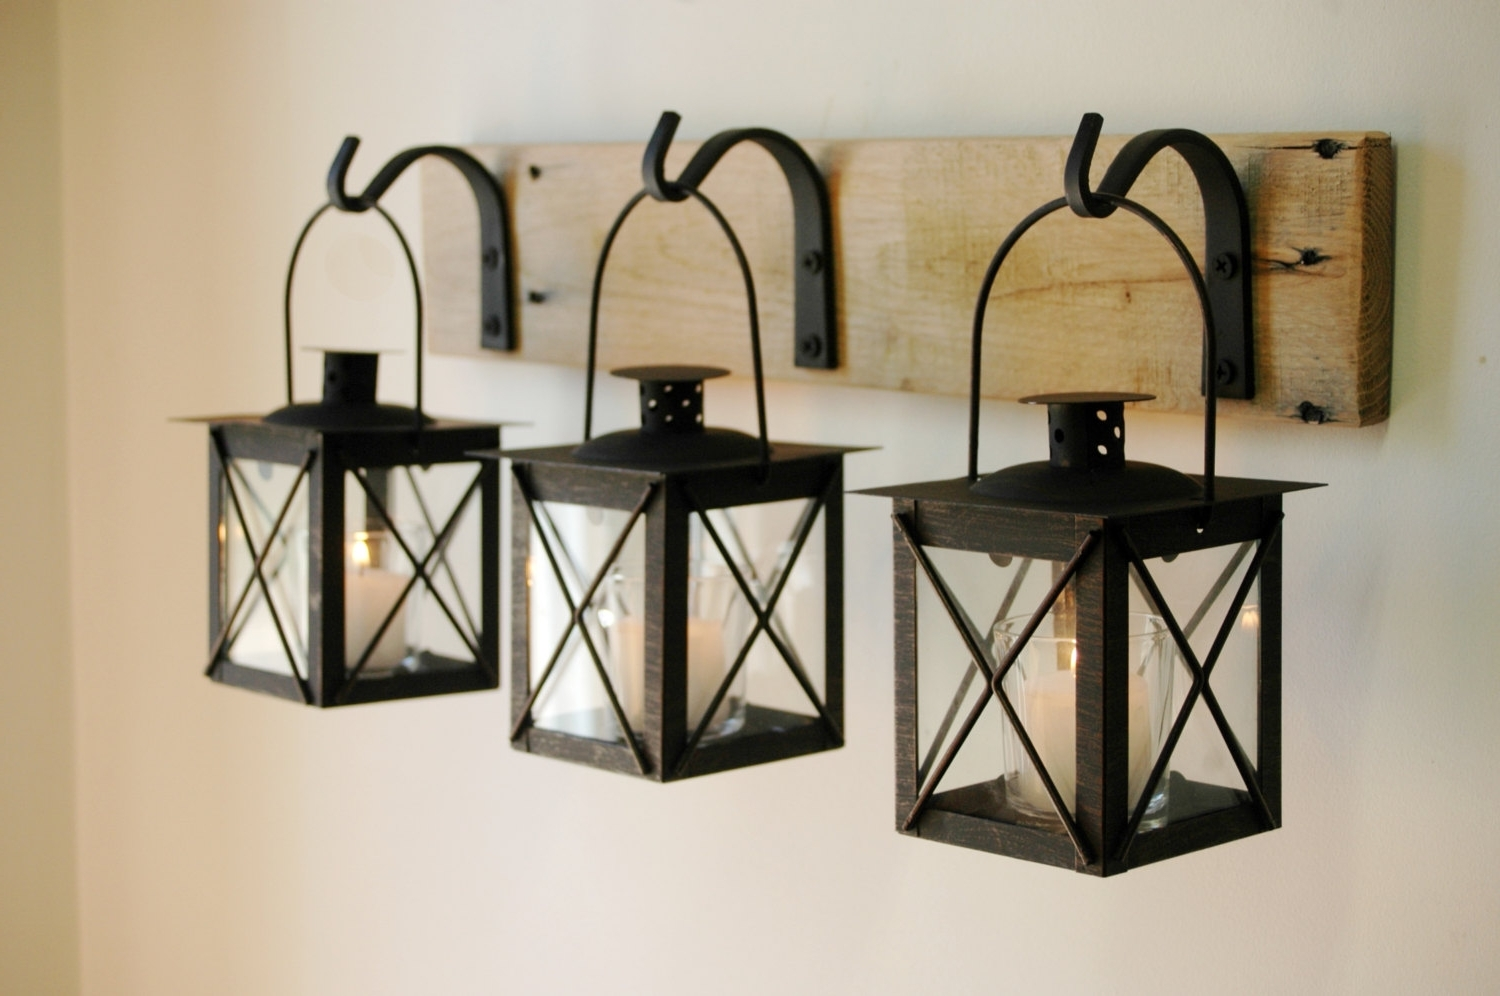 Benefit Of Wrought Iron Wall Decor — Charter Home Ideas Regarding Well Known Etsy Outdoor Lanterns (View 2 of 20)